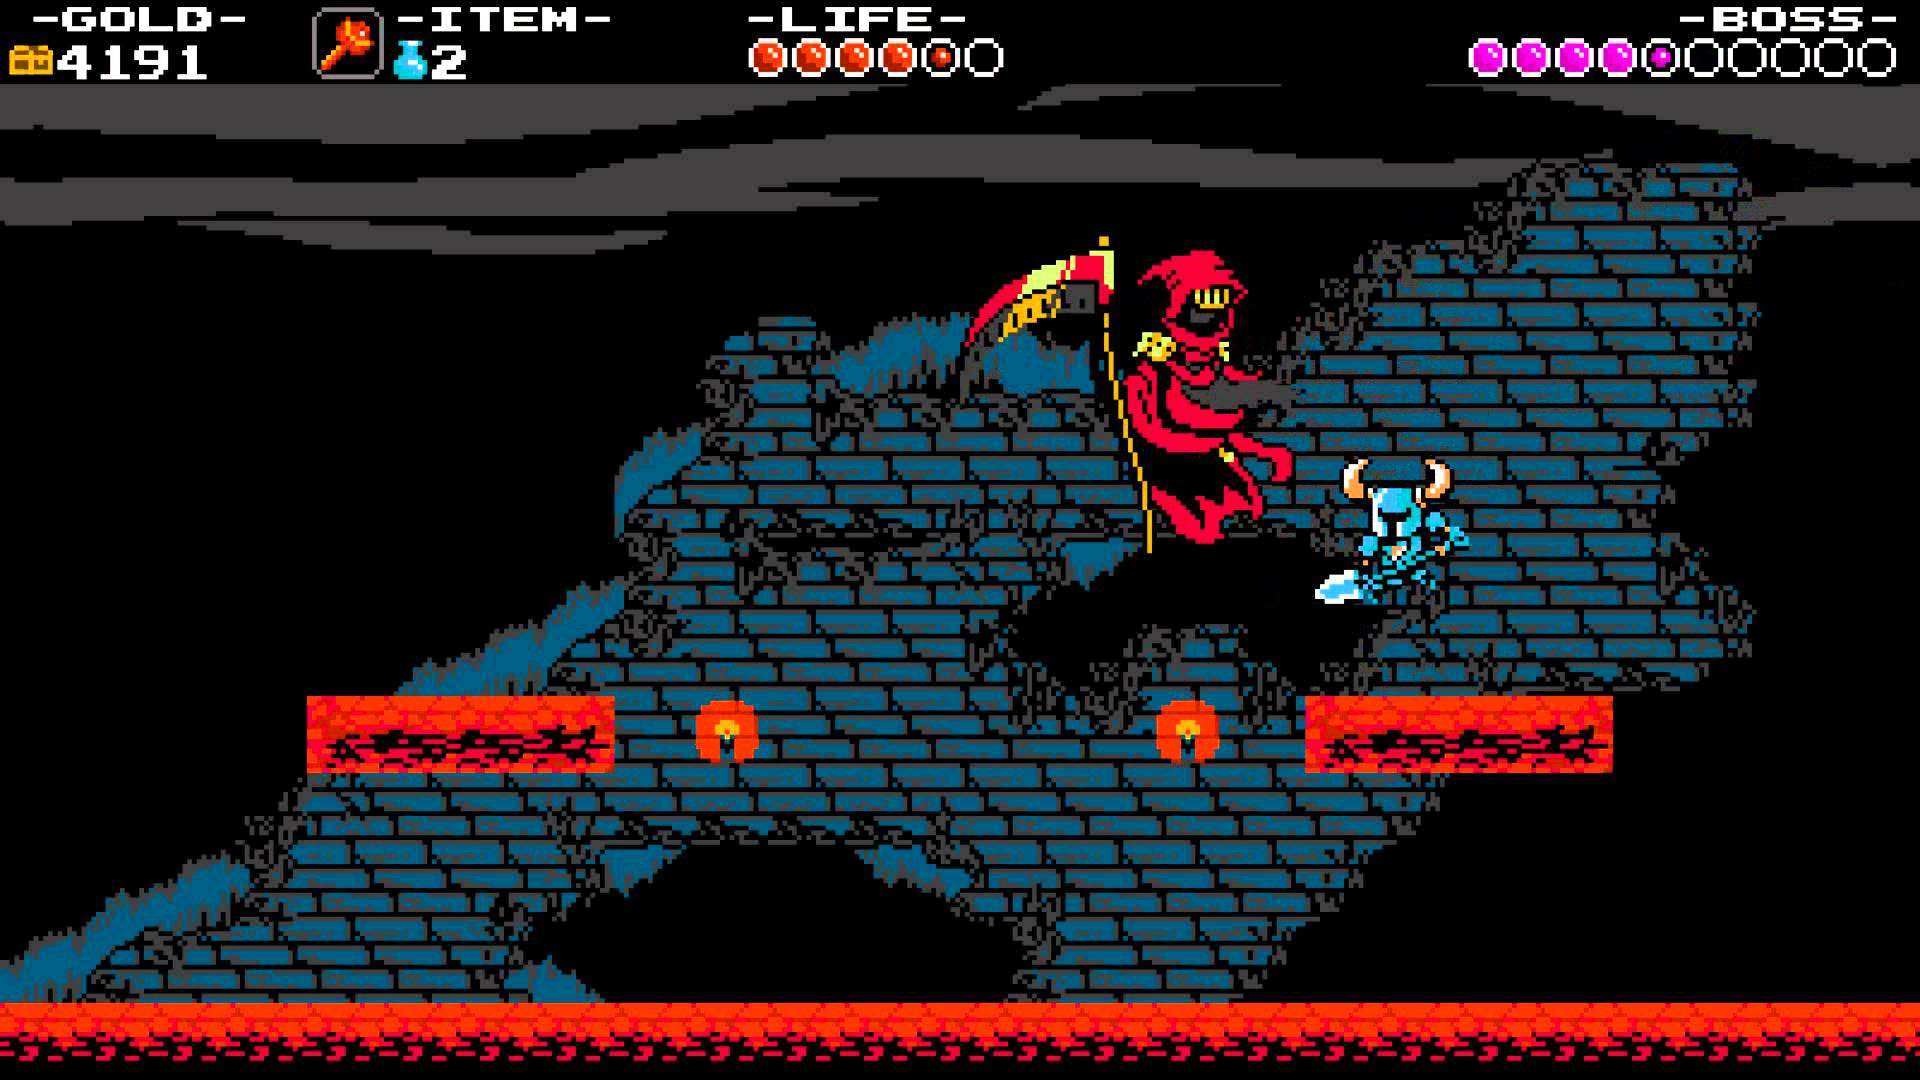 Shovel Knight Wallpaper 1920x1080 Posted By Ethan Peltier